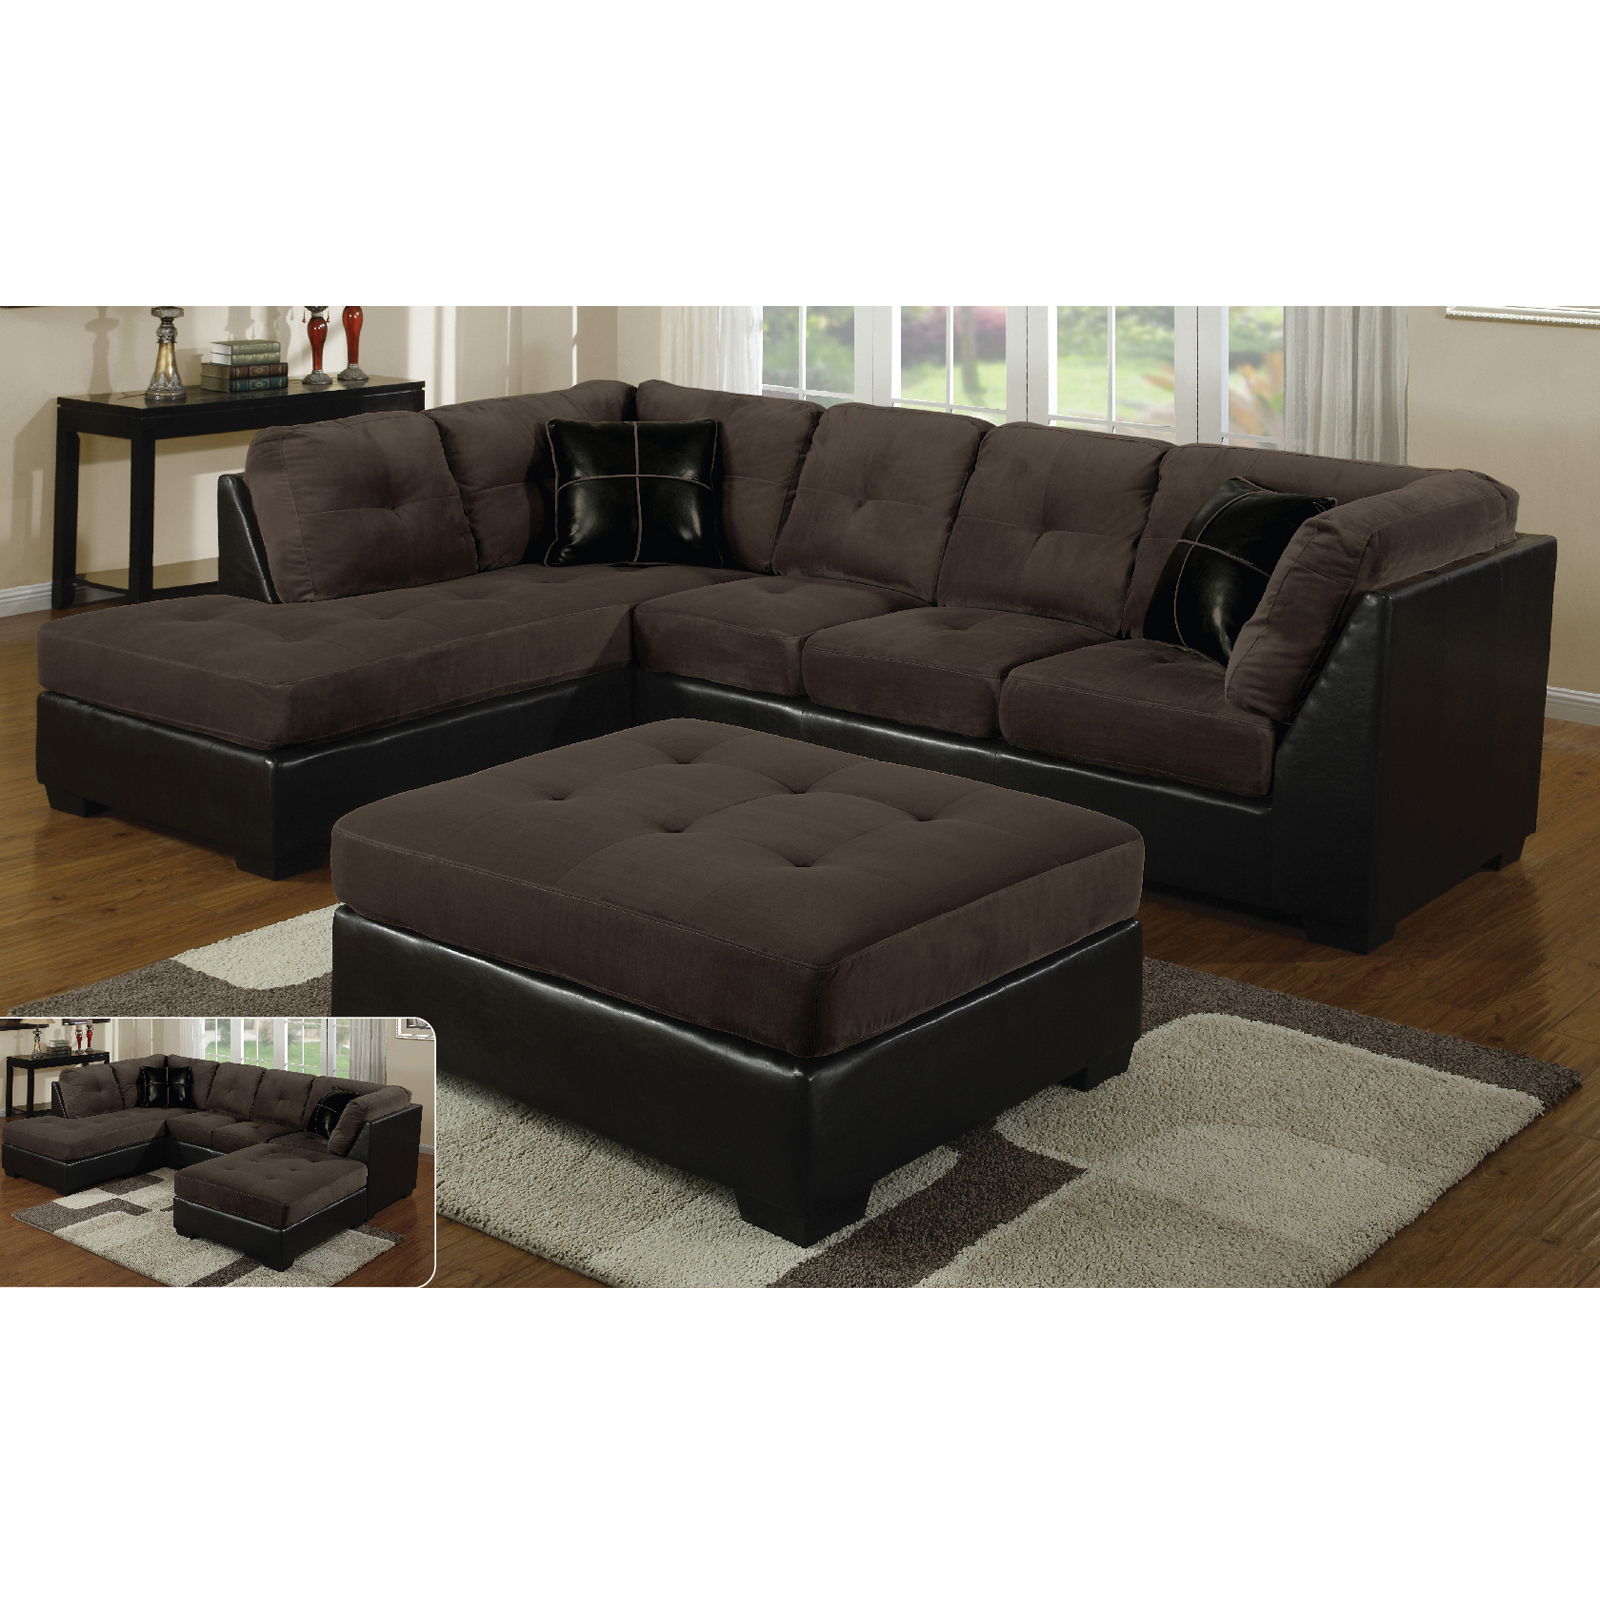 Hannah Right Sectional Sofas Inside 2018 E Motion Furniture Right Tufted Chaise Sectional (View 4 of 20)